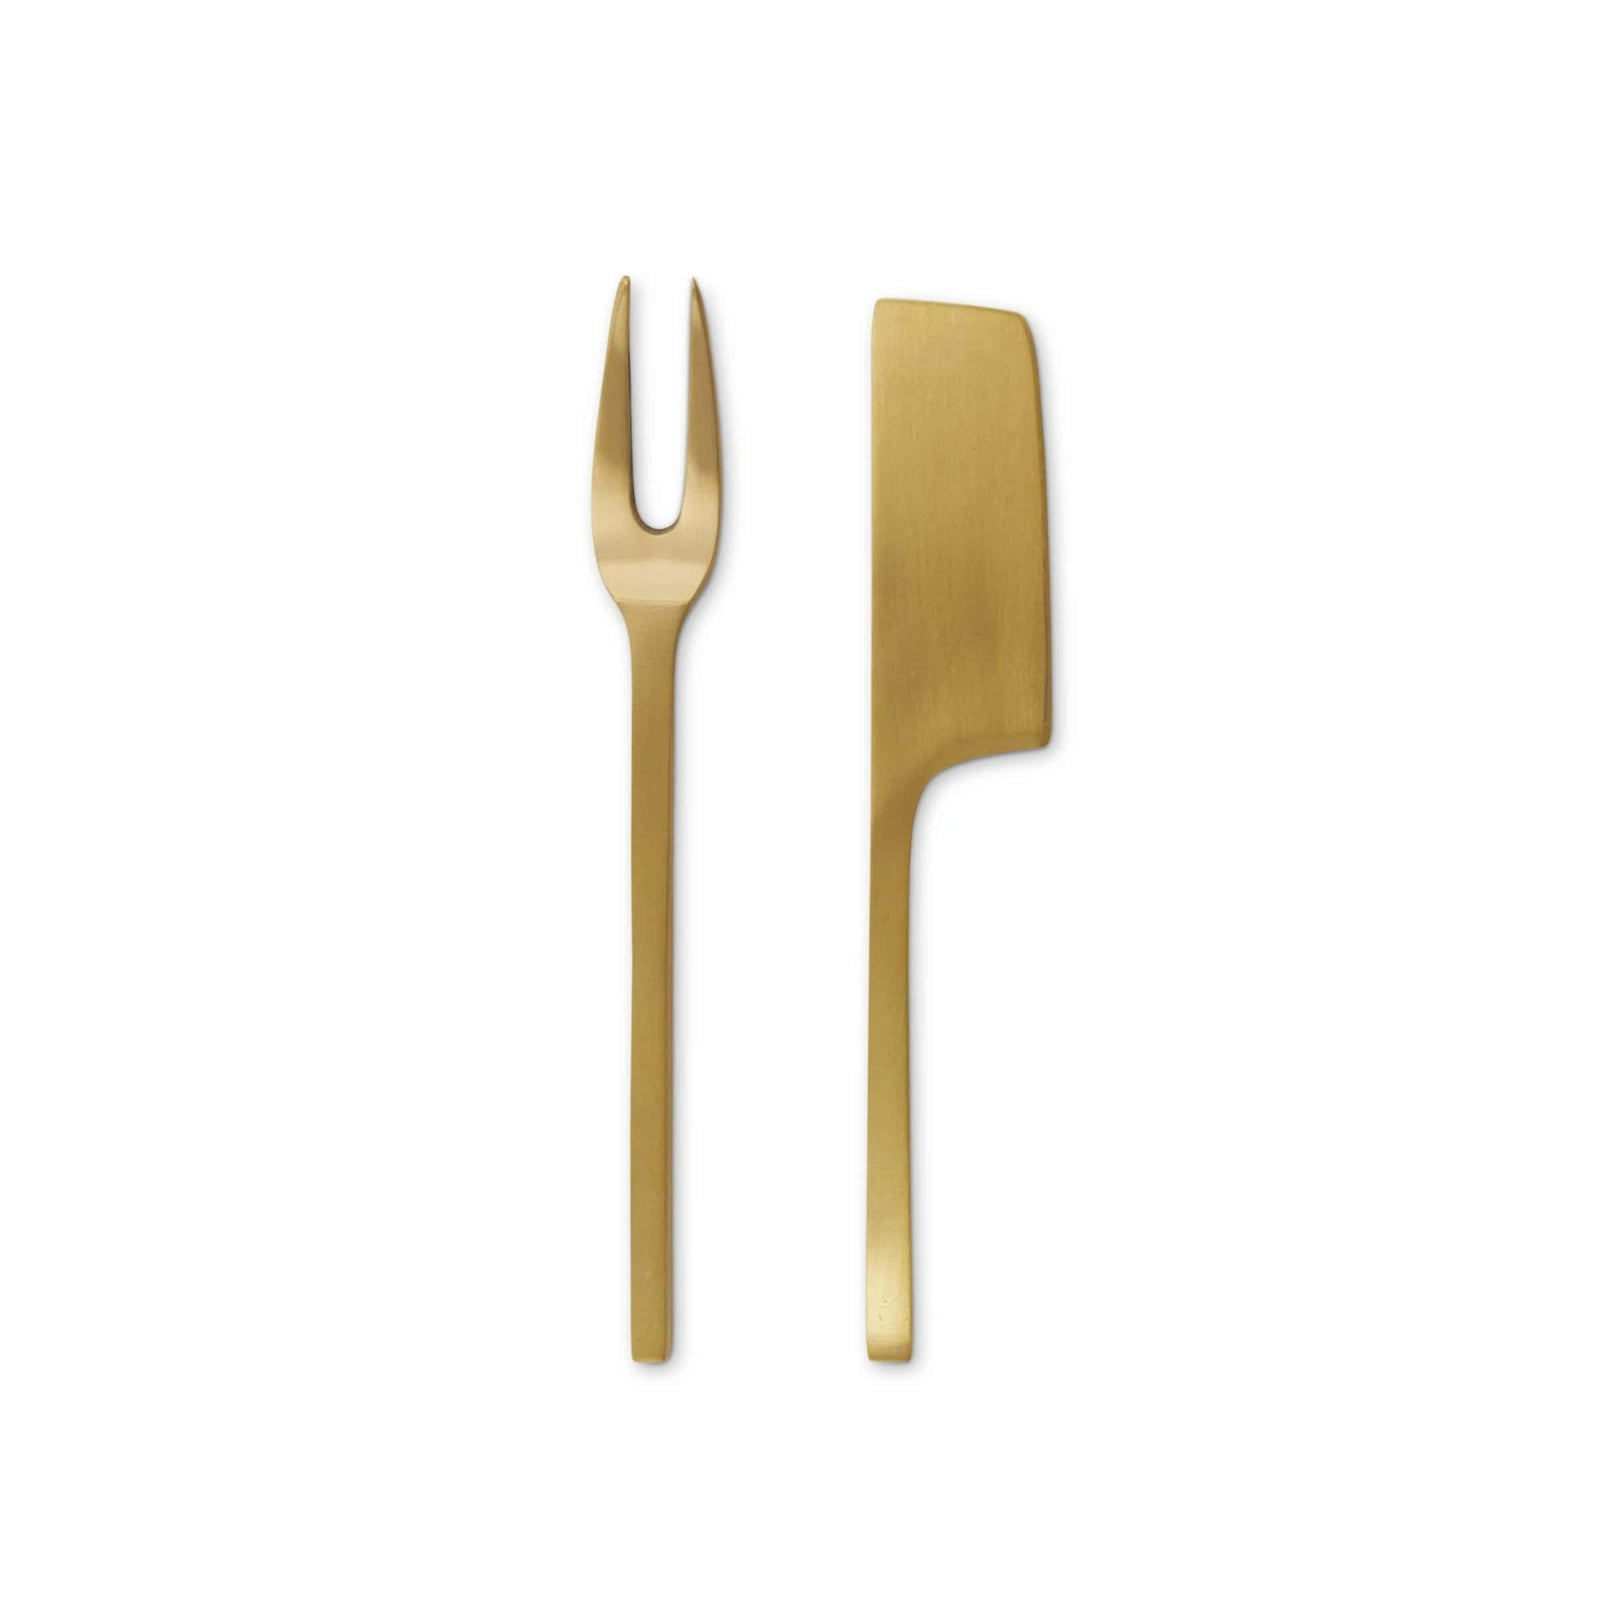 Magenta Magenta - Rae Dunn Heritage Brass Cheese Tools - Set of 2